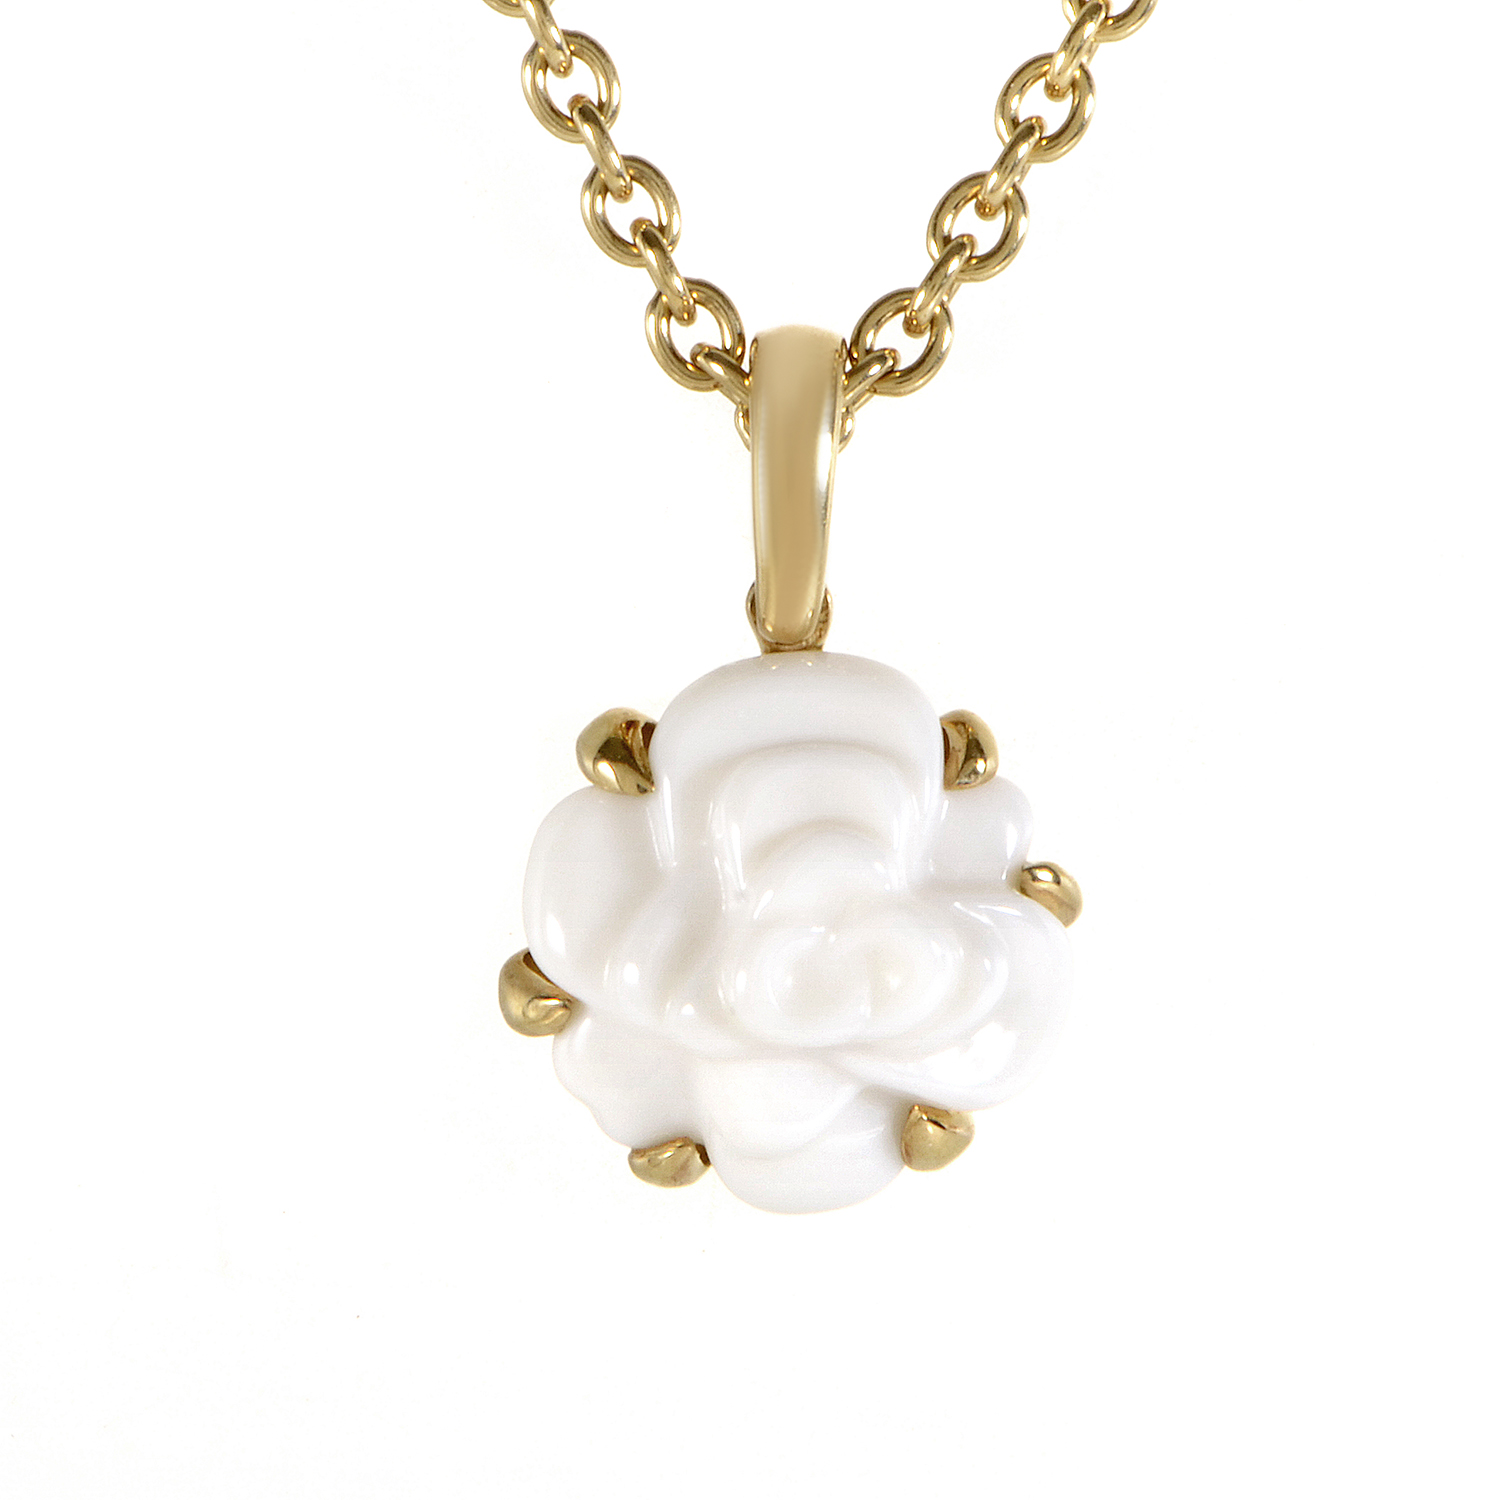 Chanel Camelia 18K Yellow Gold White Agate Pendant Necklace